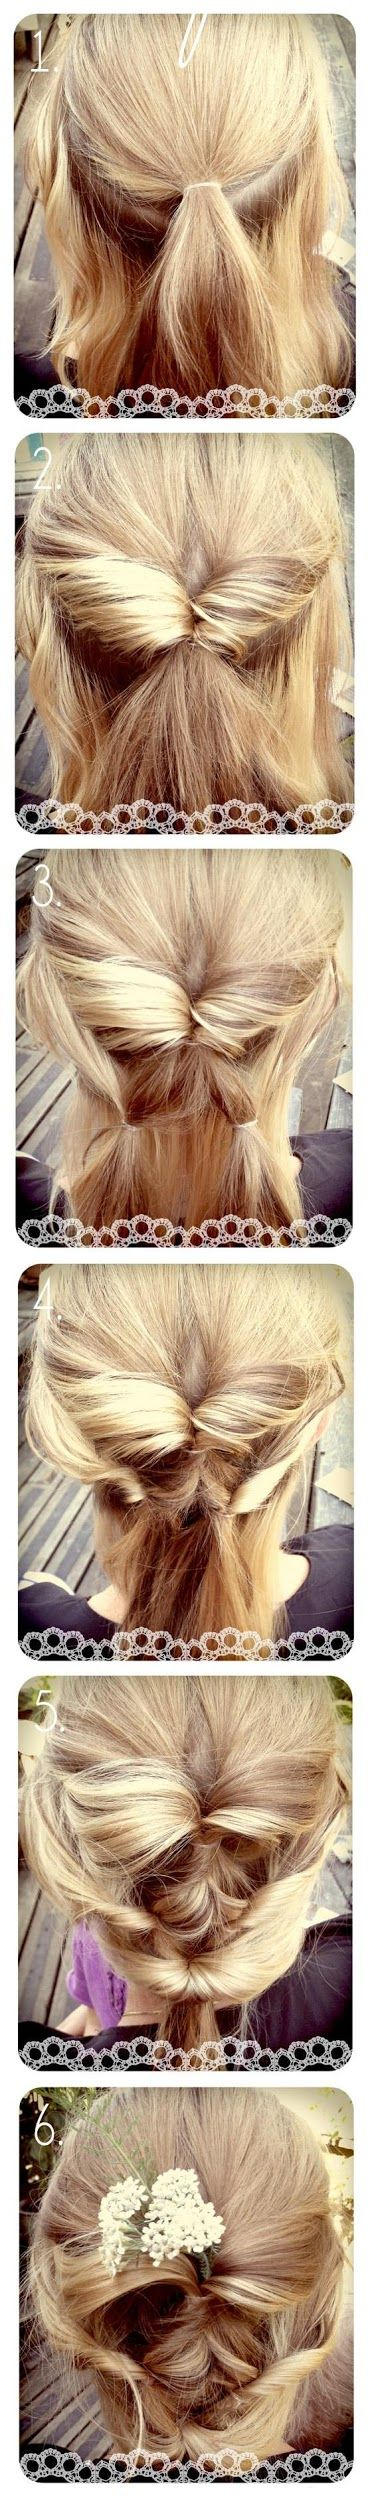 Fun/easy hairstyles!